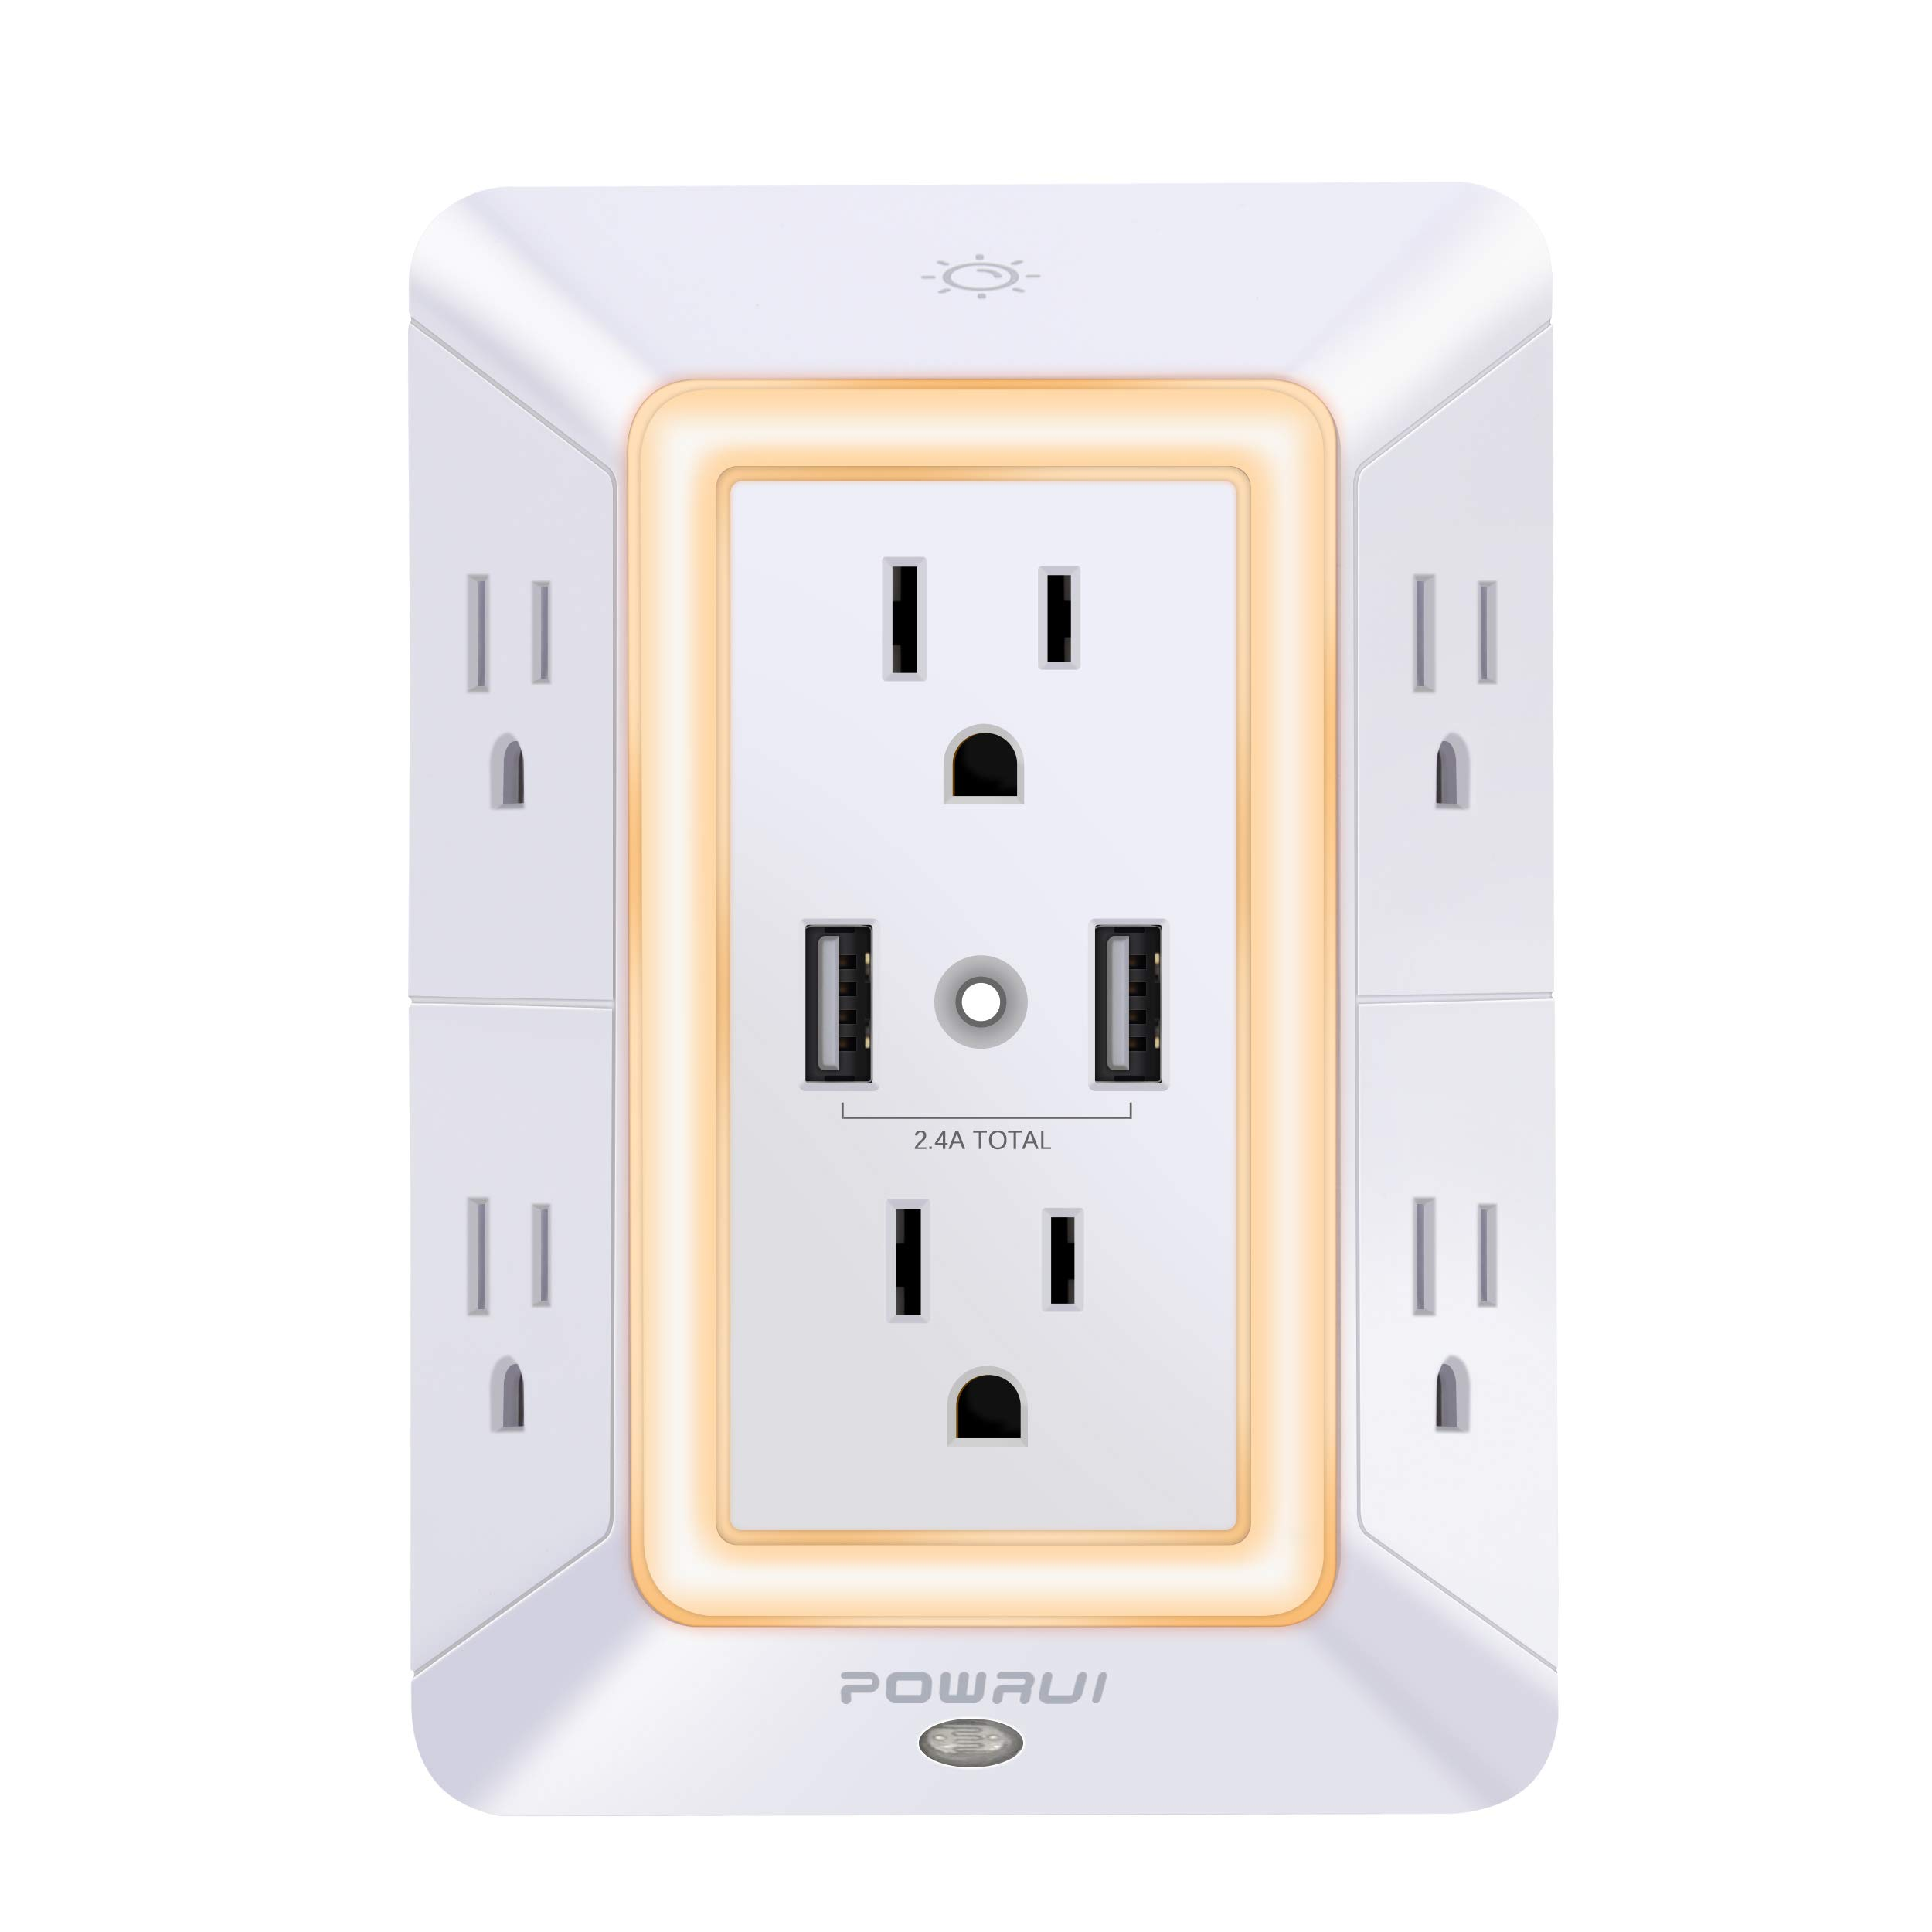 USB Wall Charger, Surge Protector, POWRUI 6-Outlet Extender with 2 USB Charging Ports (2.4A Total) and Night Light, 3-Sided Power Strip with Adapter Spaced Outlets - White,ETL Certified by POWRUI